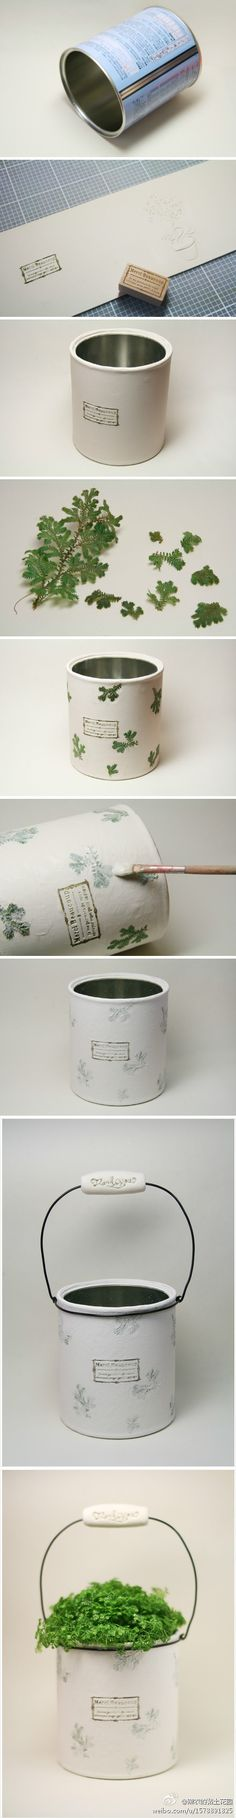 Photo tutorial: Planter from large can. Could use a [new] paint can from Depot as well.